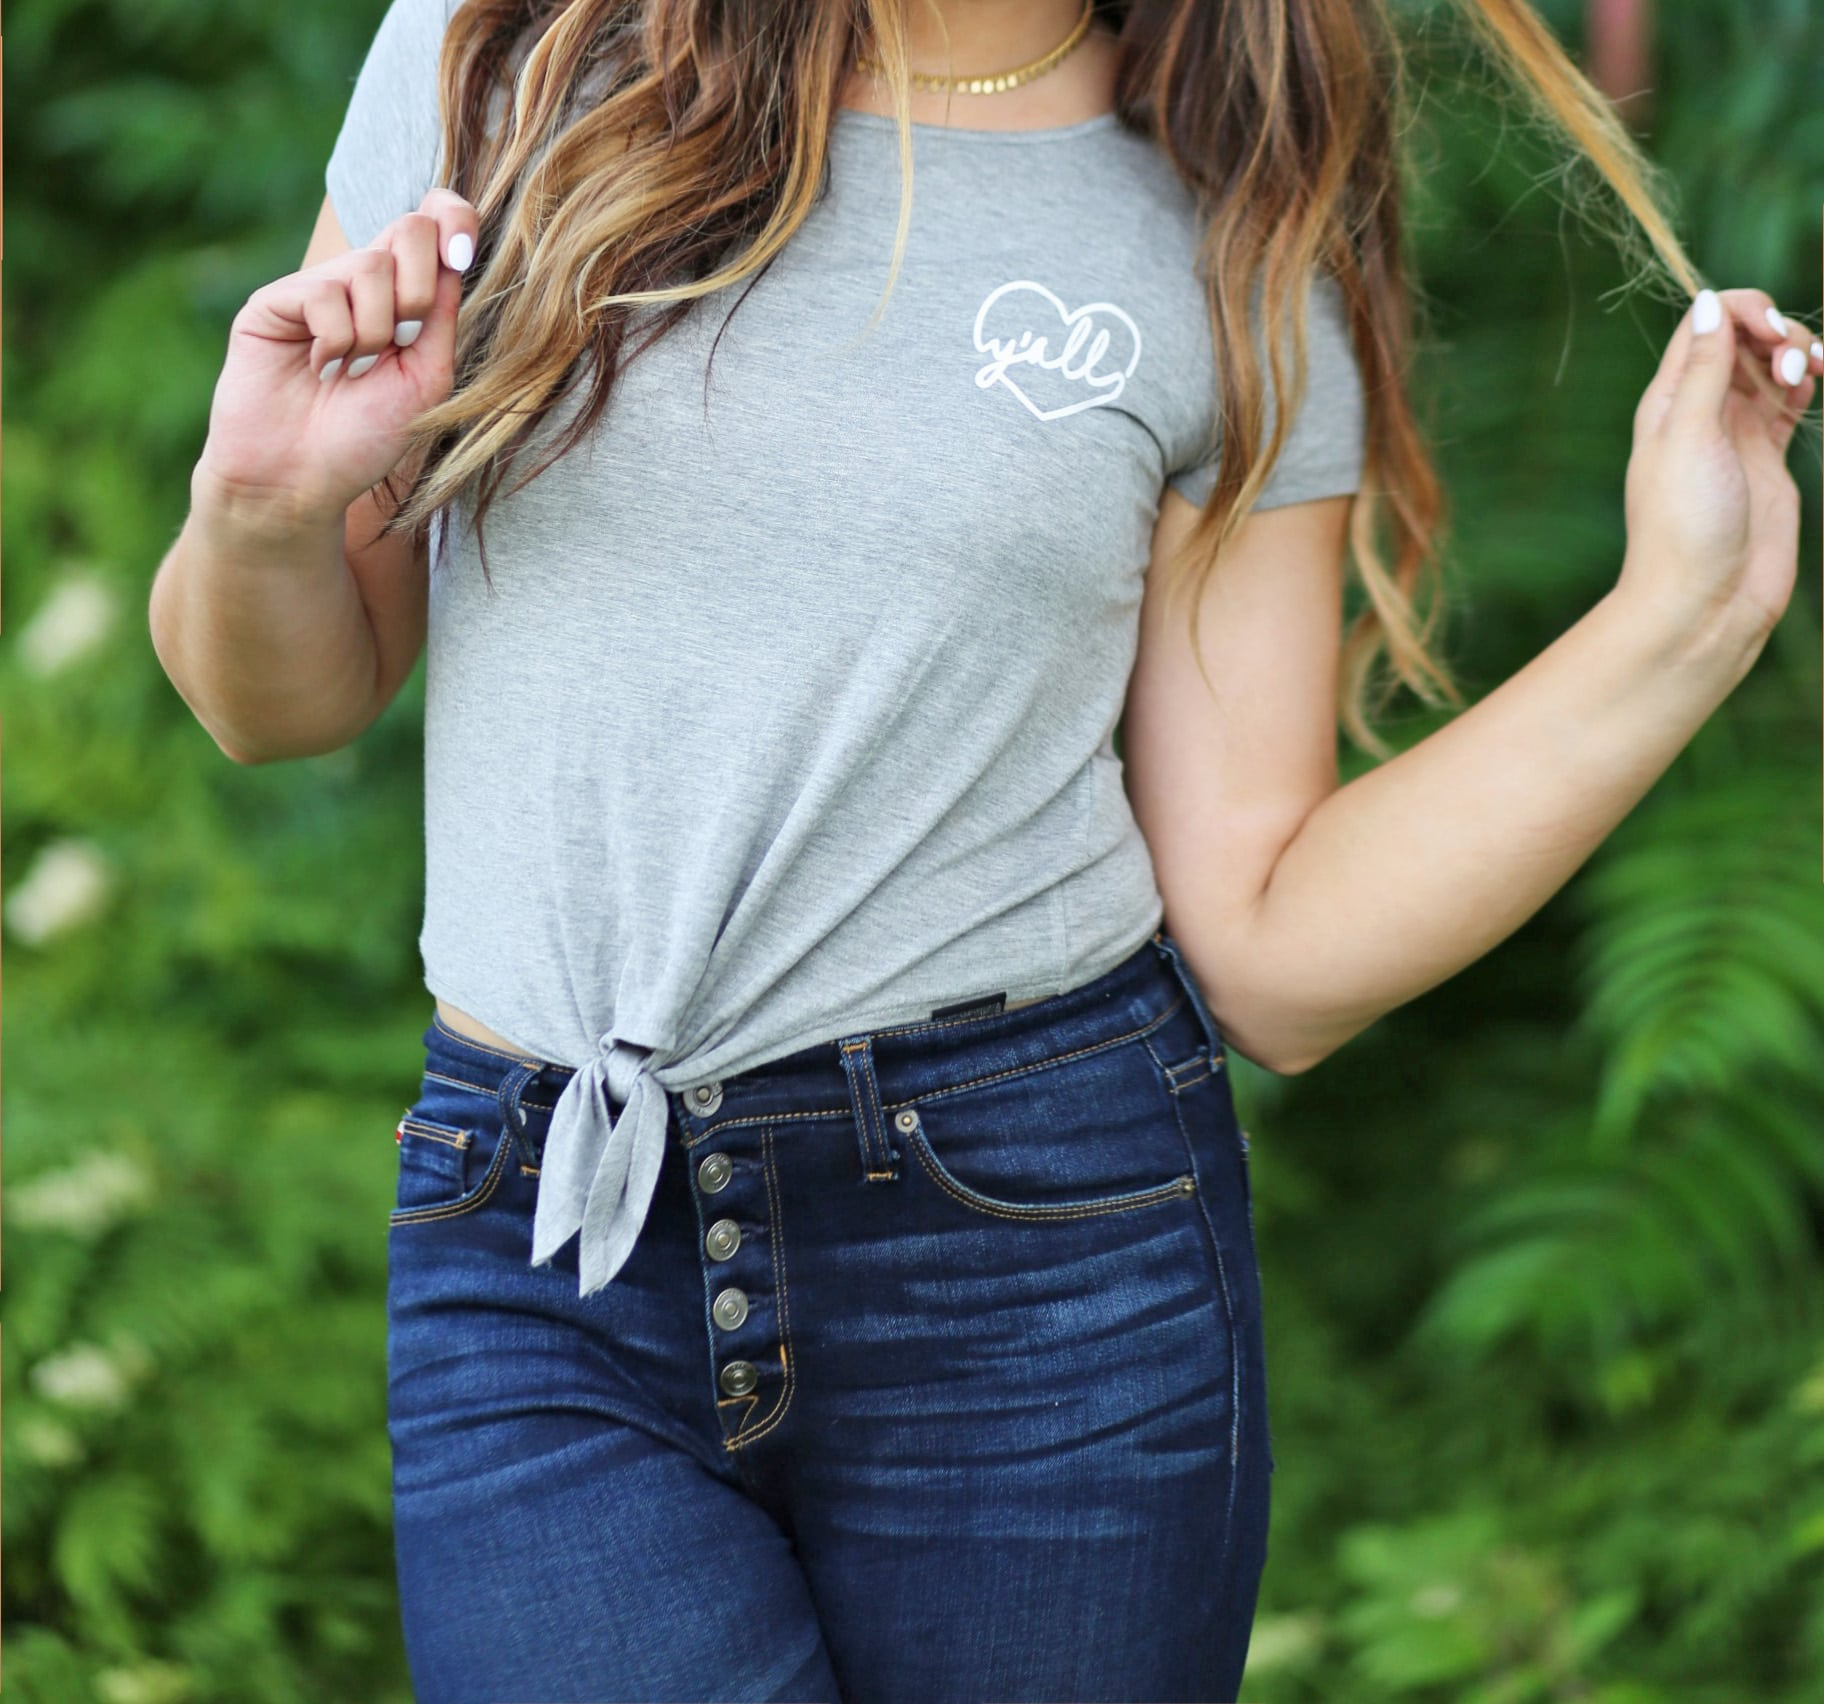 Mash elle beauty blogger | y'all shirt | jeans outfit | southern roots | florida girl | south